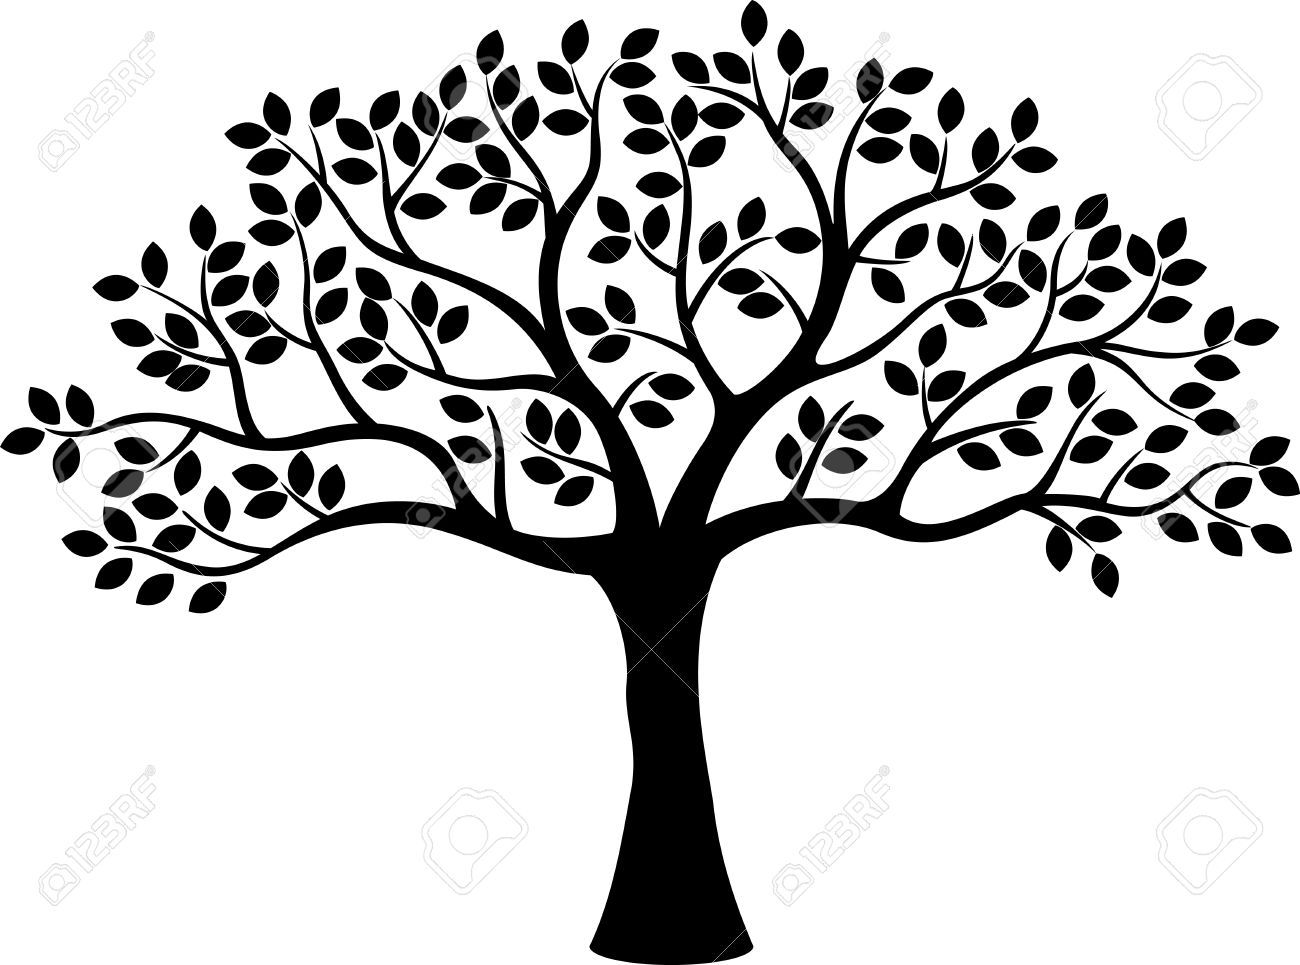 1300x965 30329270 Tree Silhouette Stock Vector Tree Life Family.jpg (1300